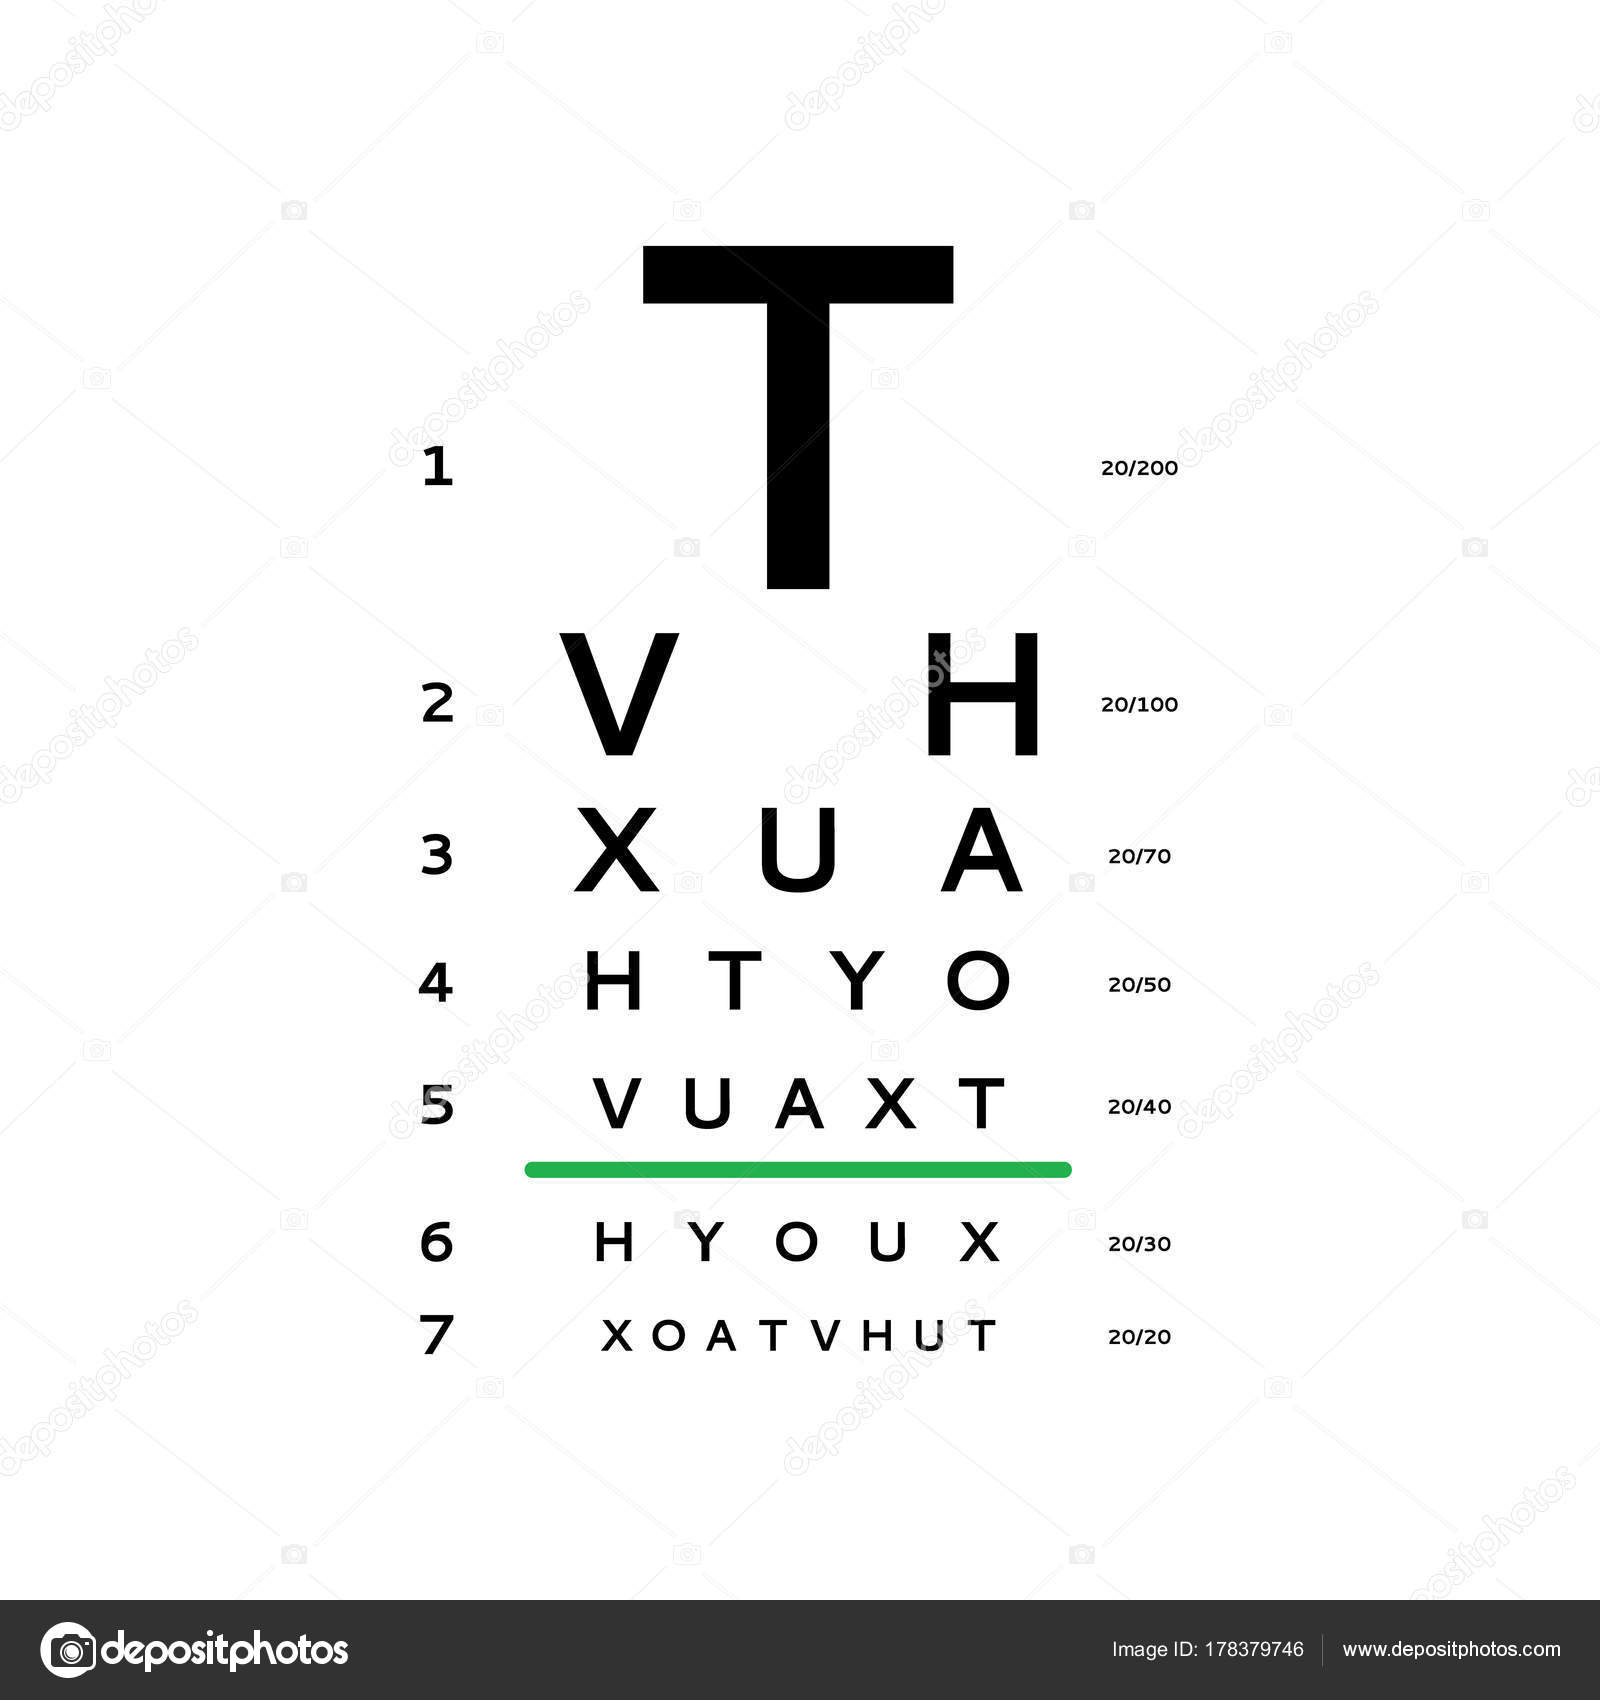 Blurry eye test chart image collections free any chart examples amsler grid eye test chart choice image free any chart examples blurry eye test chart choice nvjuhfo Images